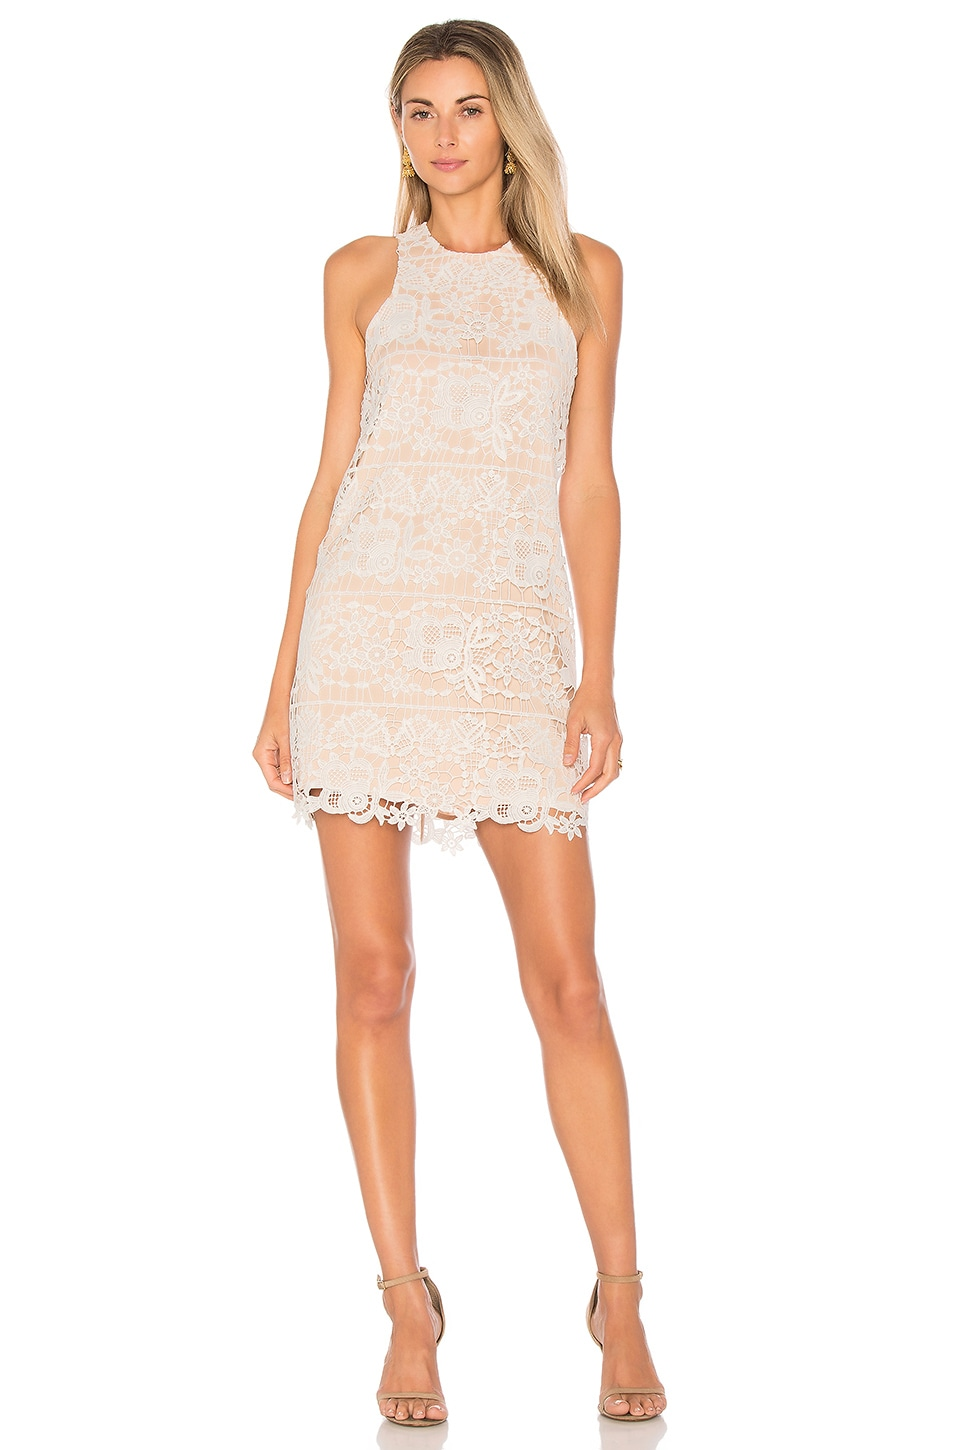 Lovers + Friends Caspian Shift Dress in Ivory